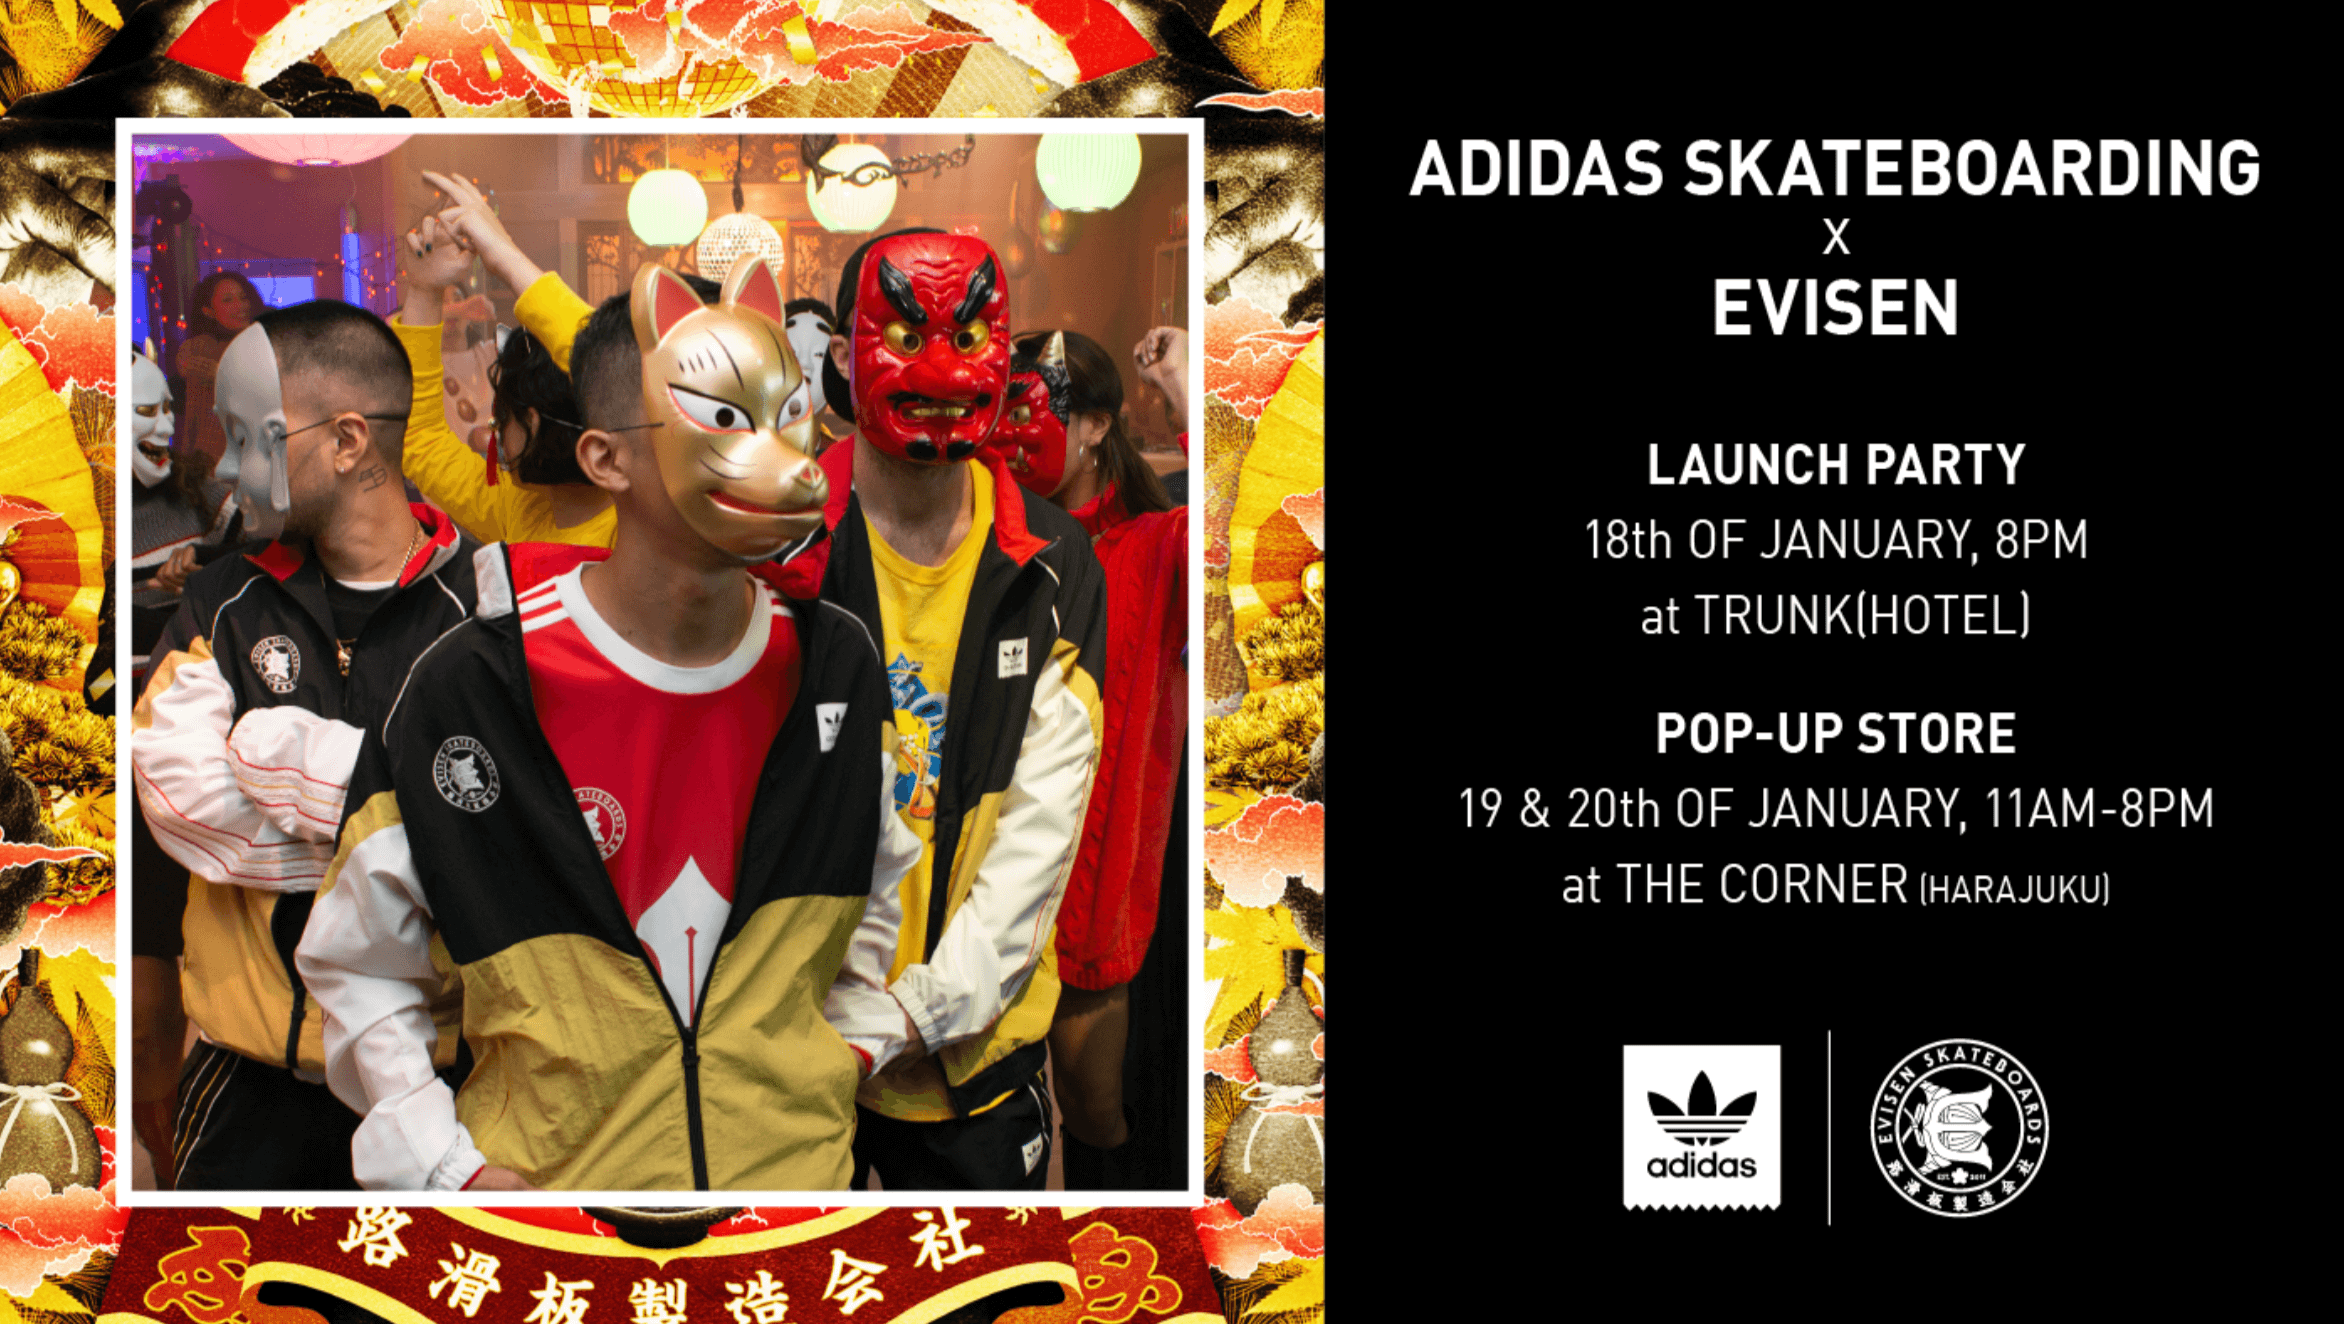 adidas Skateboarding x Evisen LAUNCH PARTY